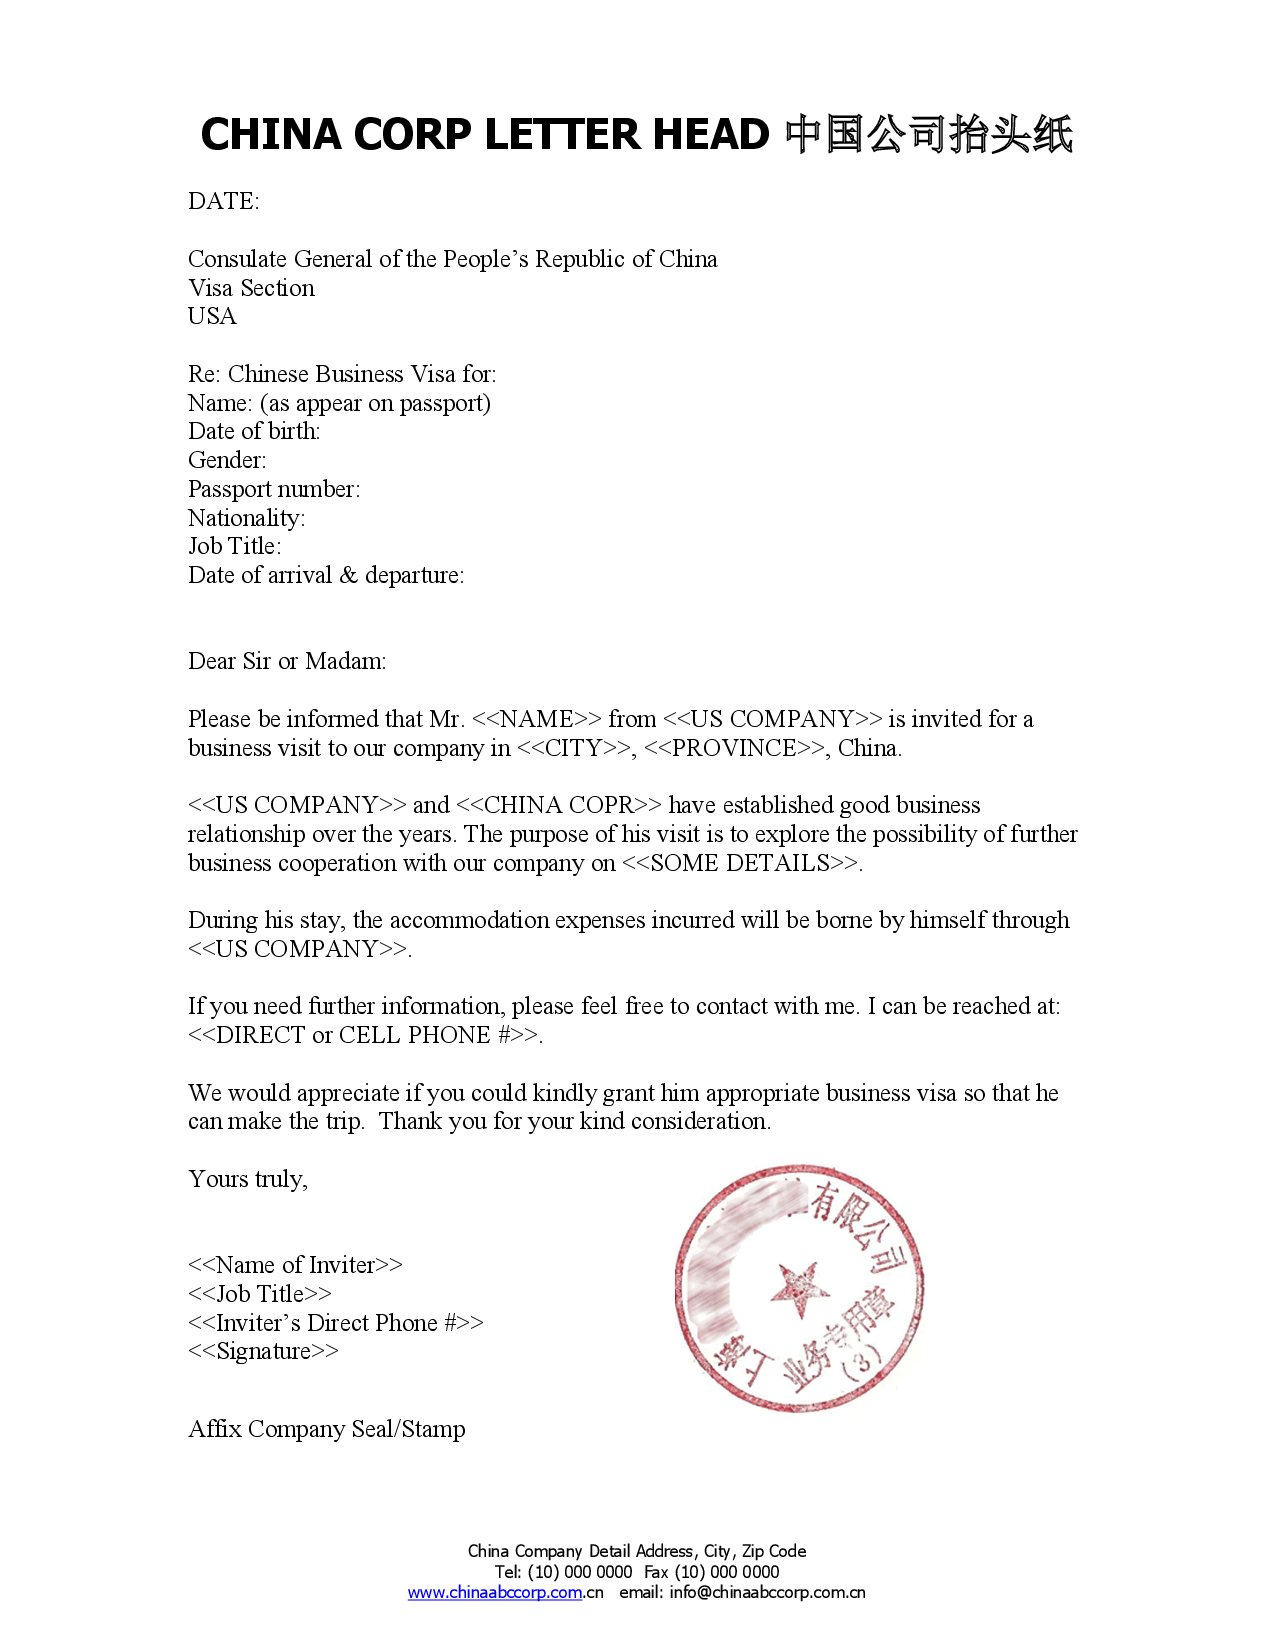 Format invitation letter for business visa to china lettervisa format invitation letter for business visa to china lettervisa invitation letter application letter sample stopboris Image collections